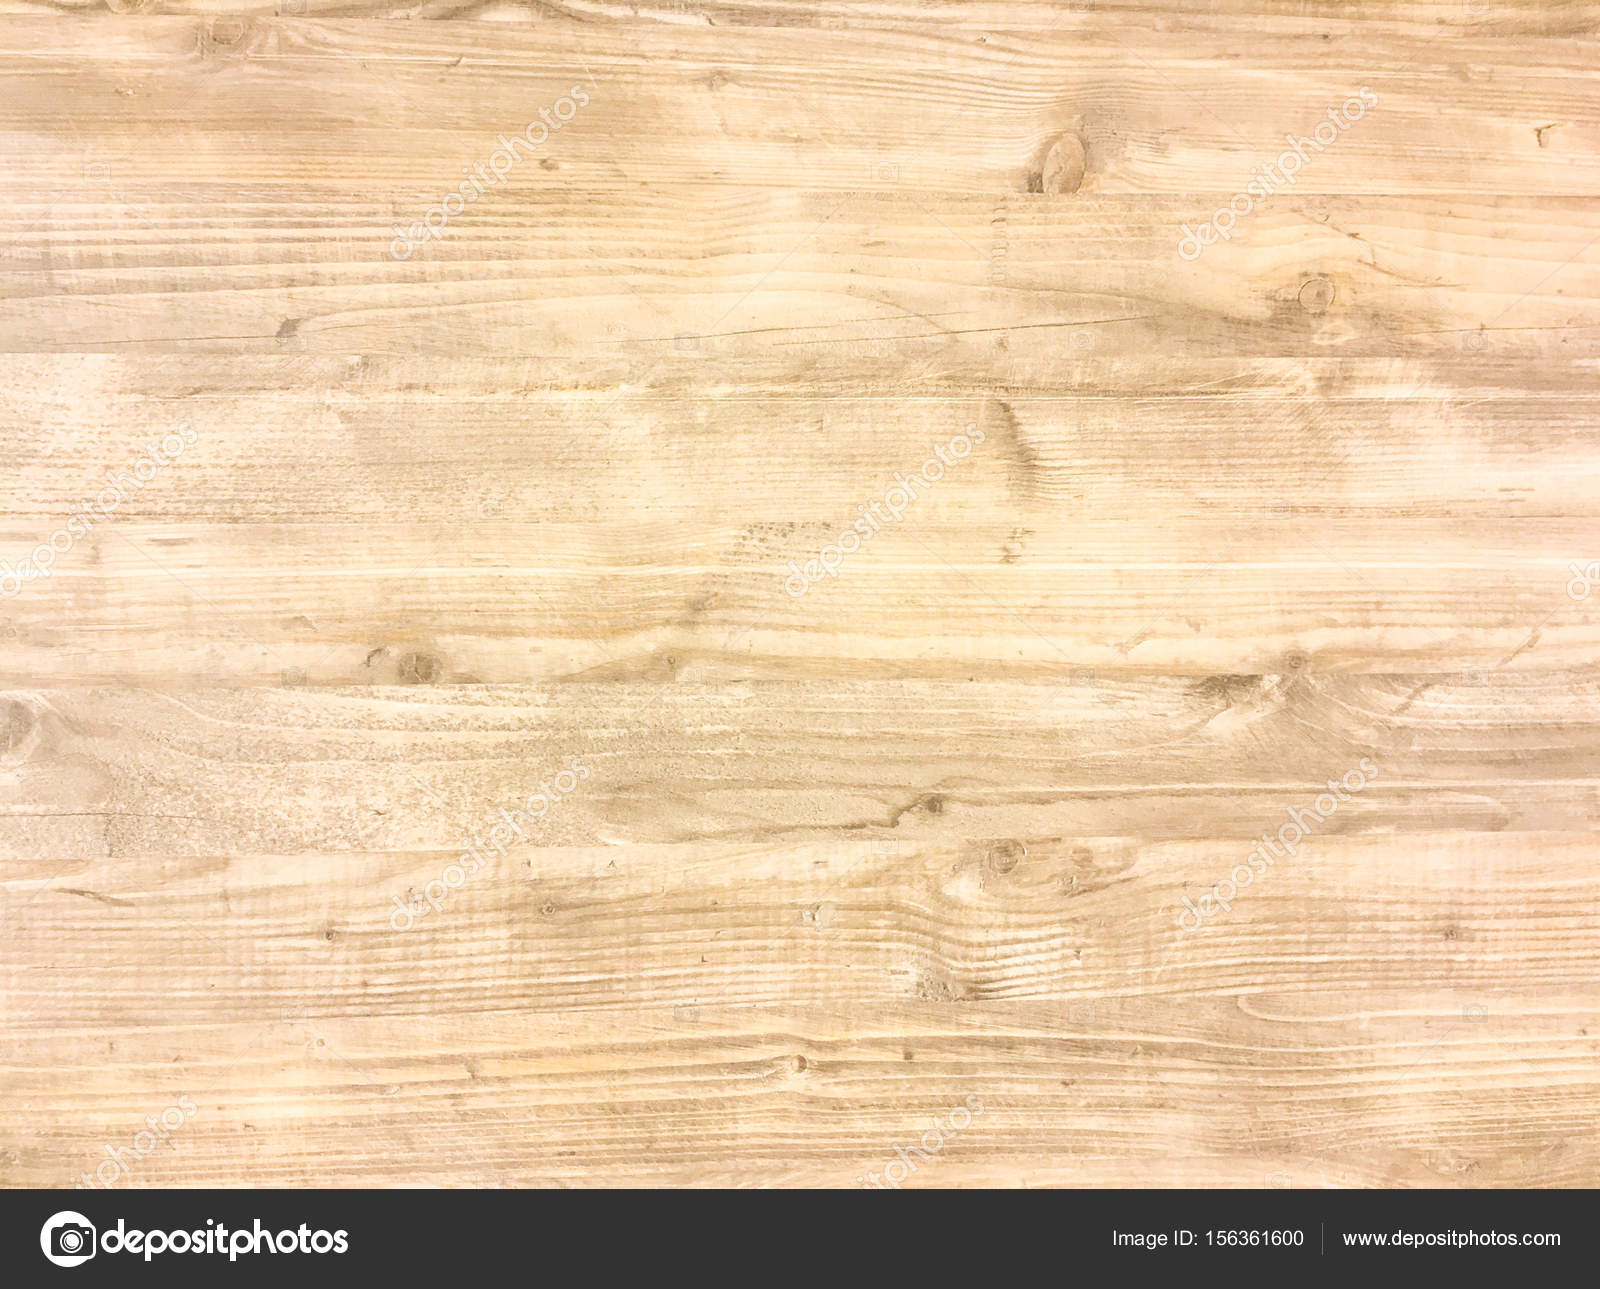 White organic wood texture light wooden background old for Legno chiaro texture